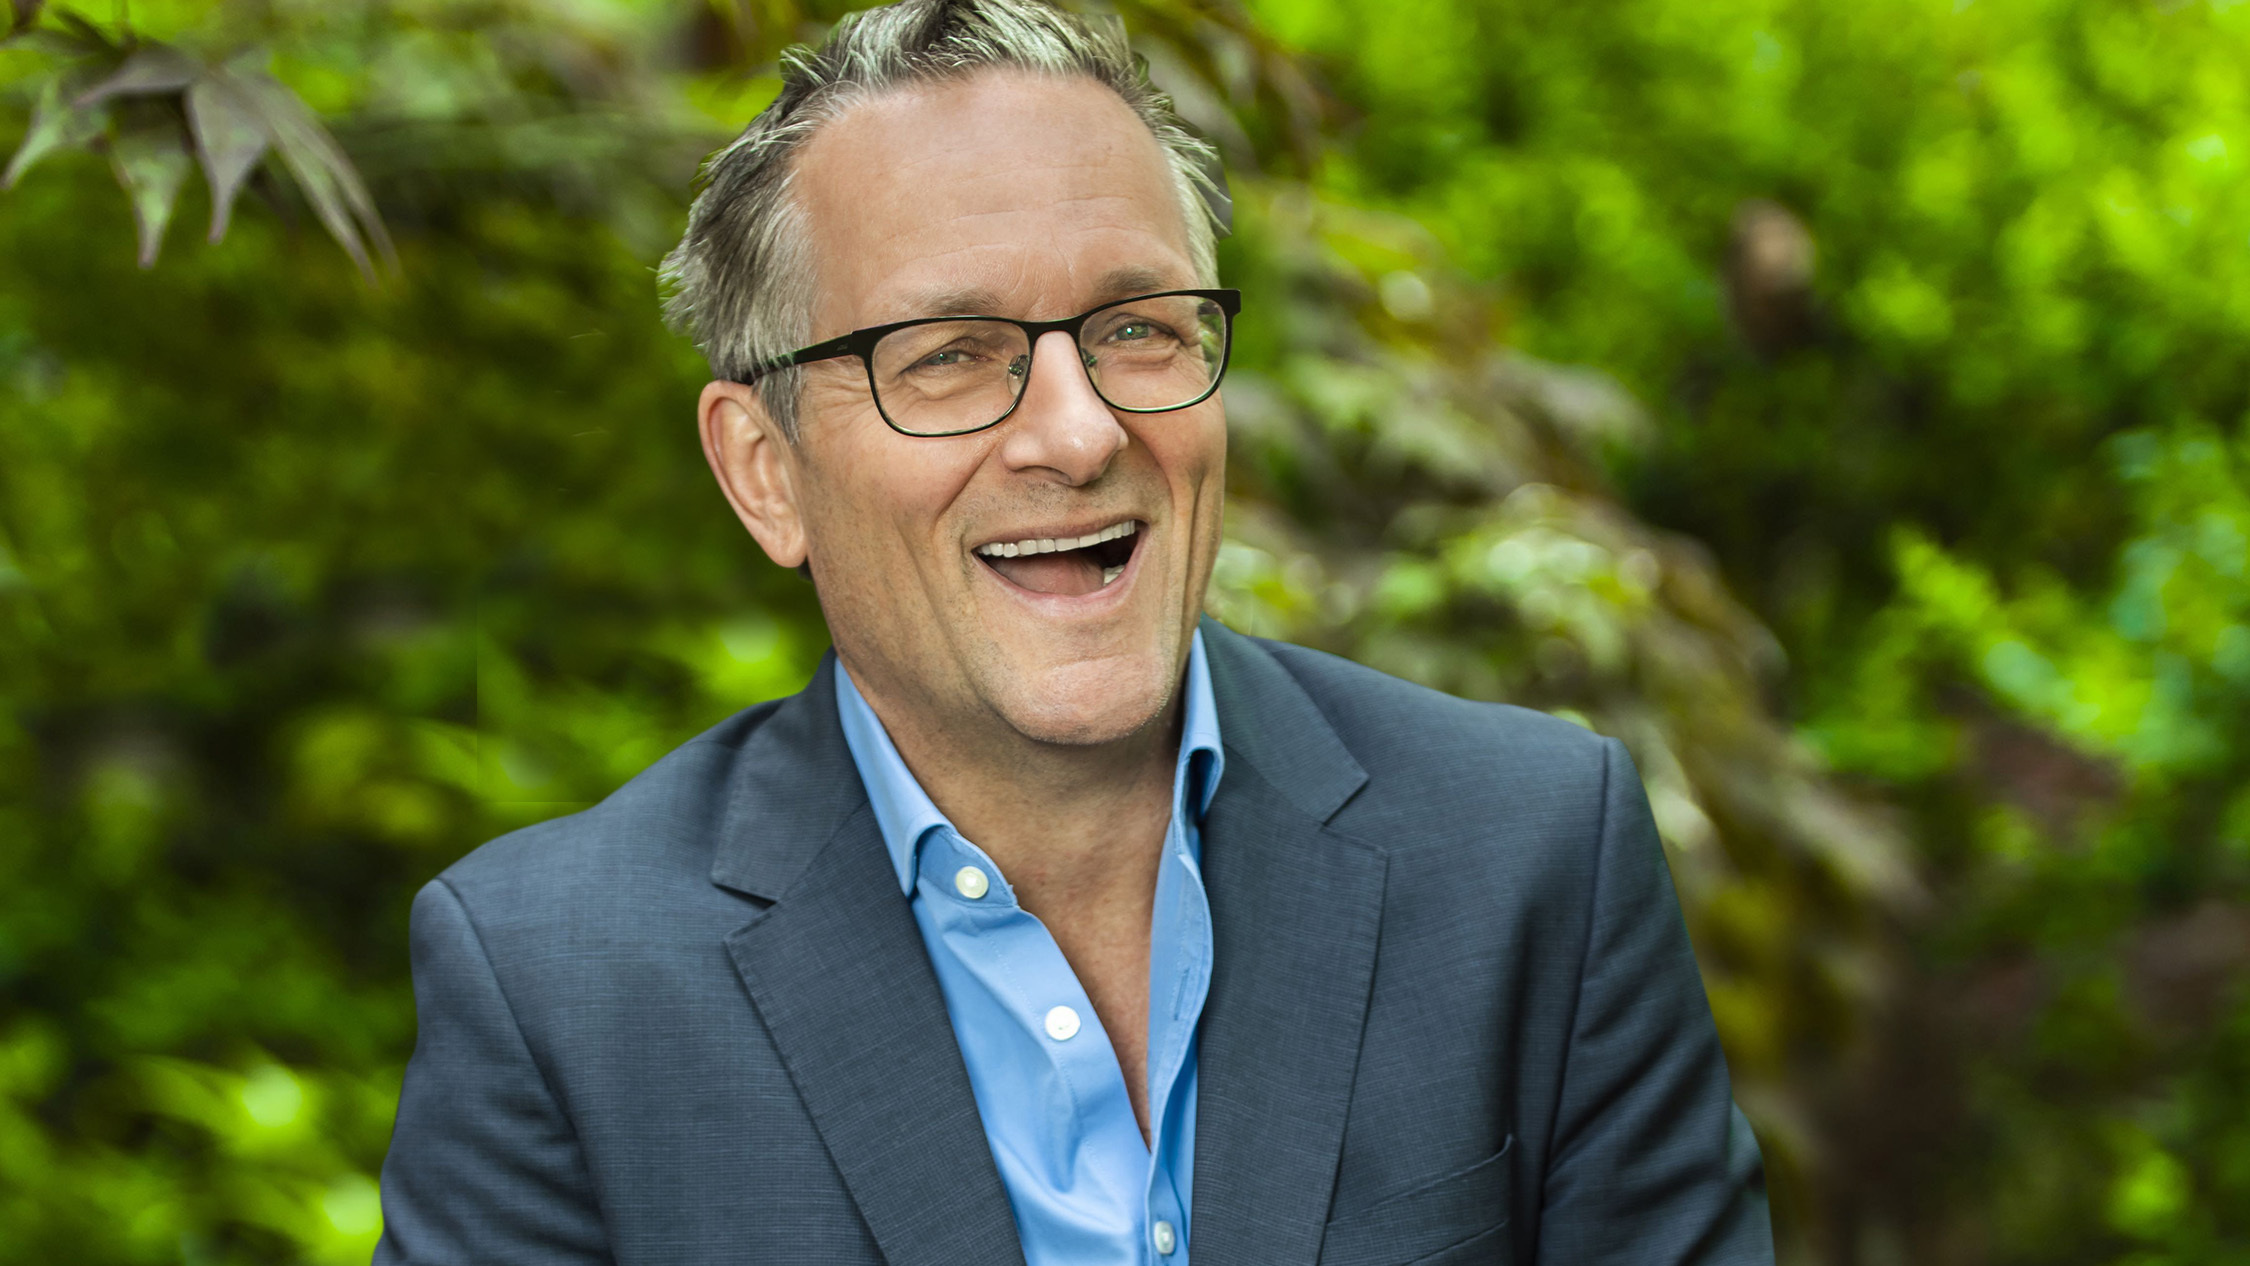 Michael Mosley smiling in front of some trees.